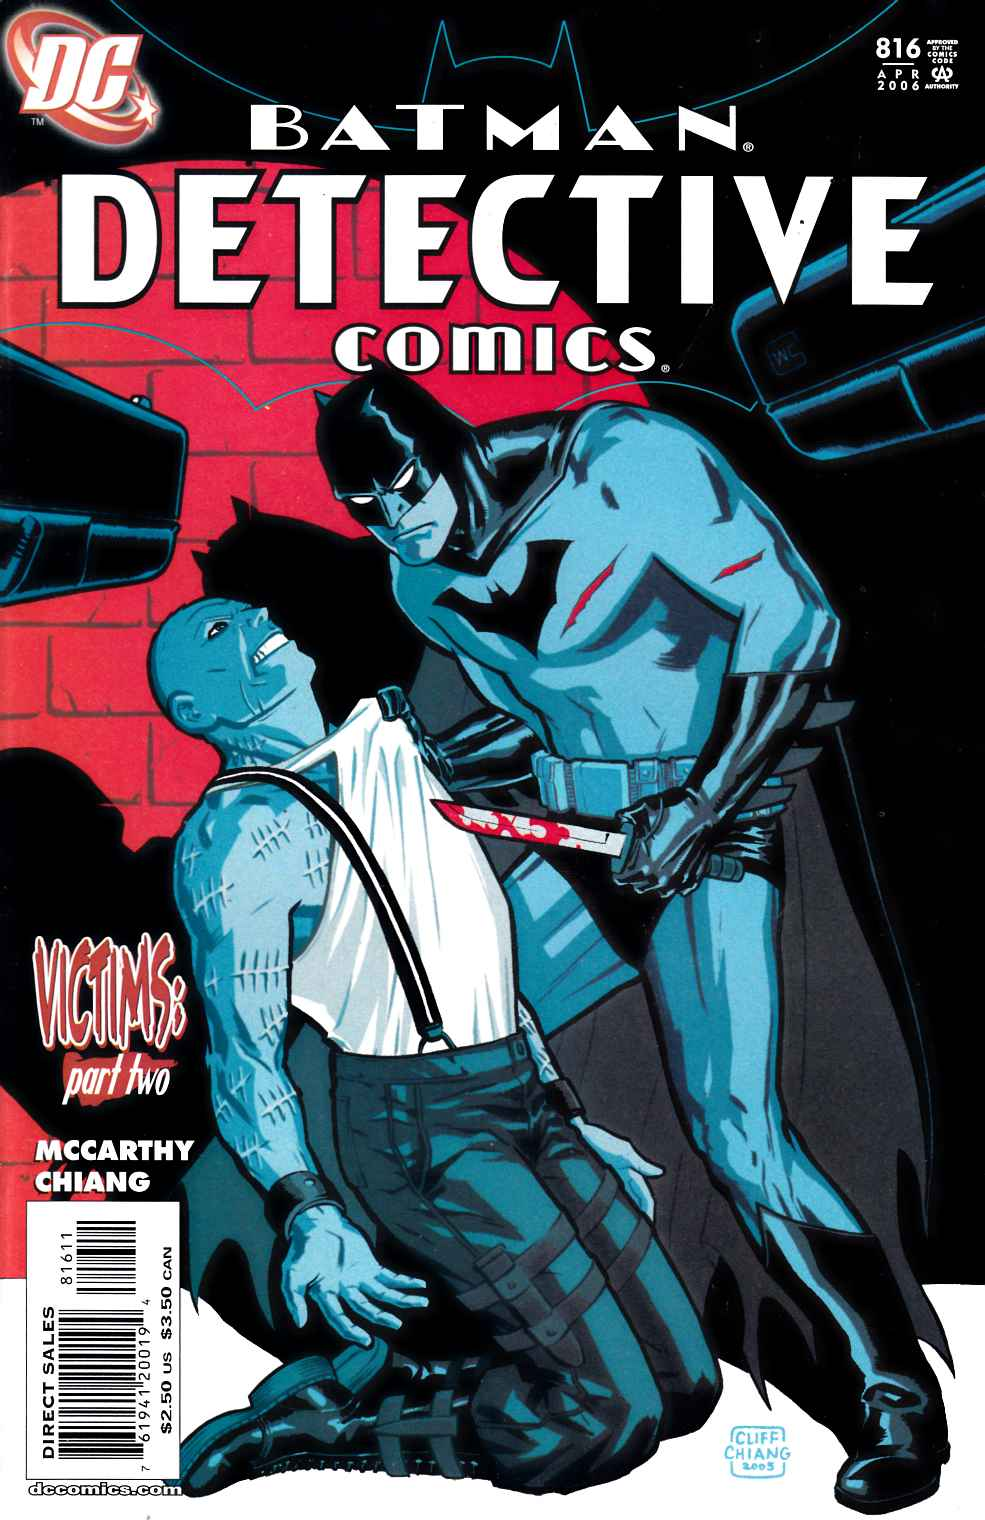 Detective Comics #816 Very Fine Plus (8.5) [DC Comic] THUMBNAIL